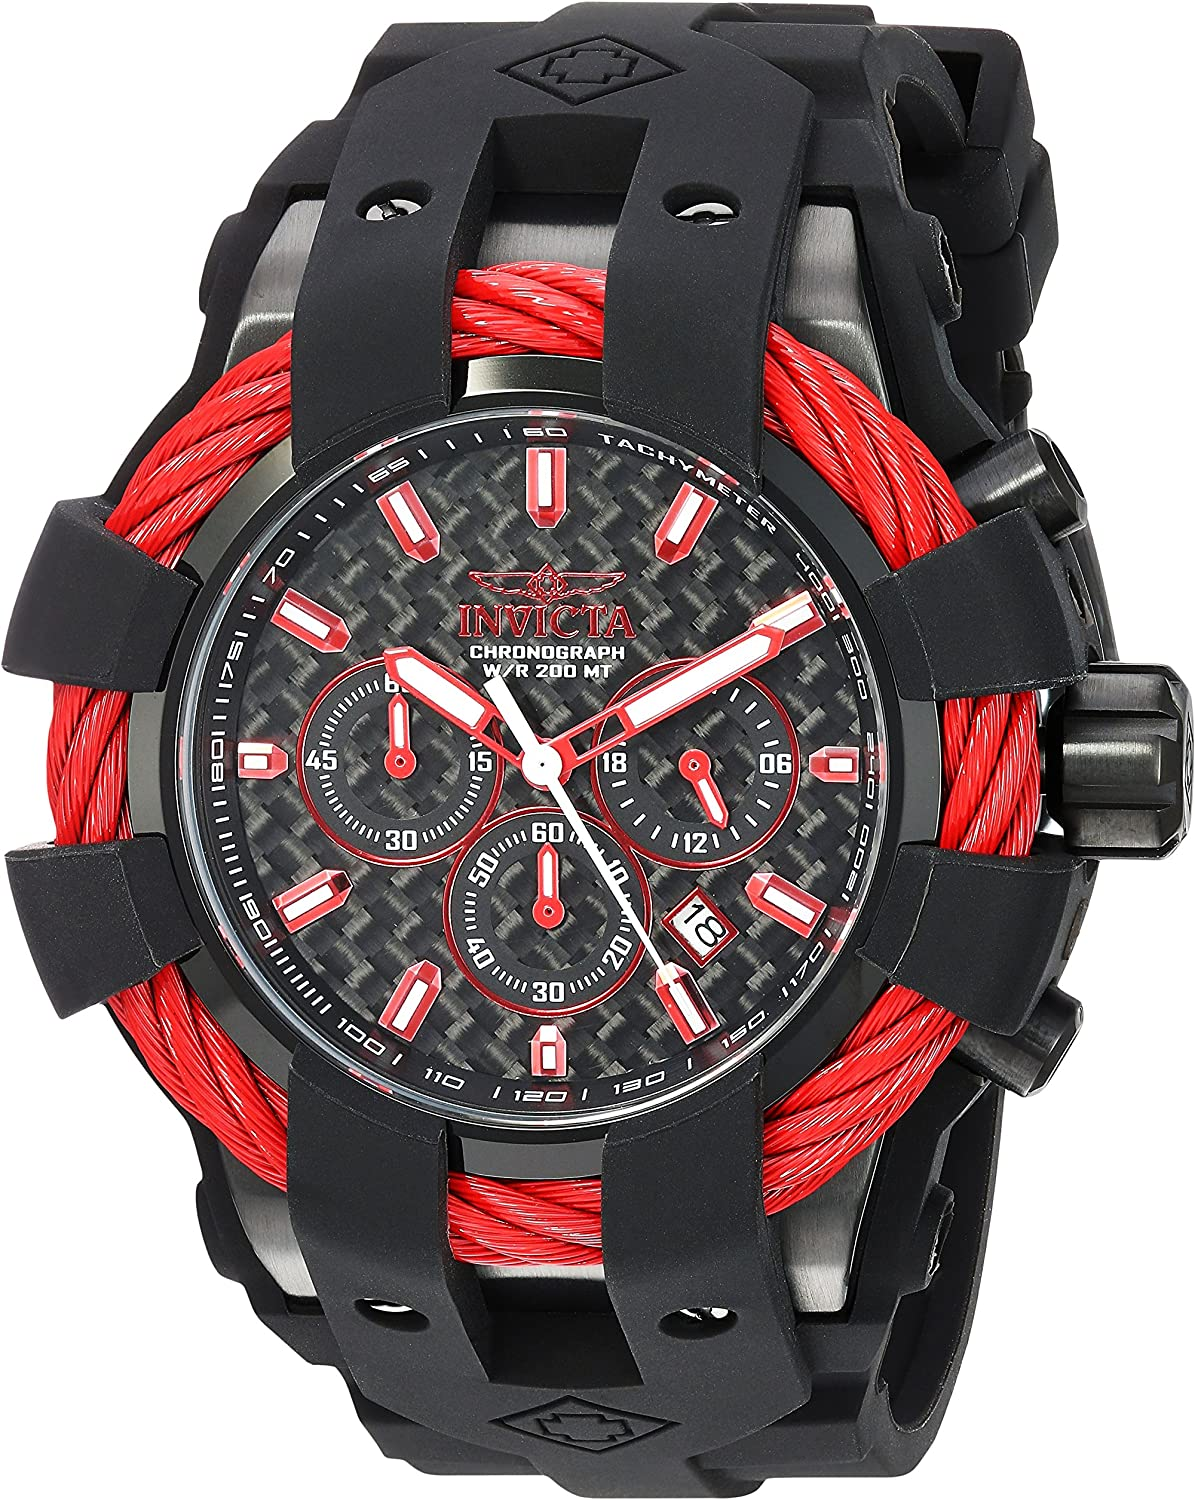 Invicta Men s Bolt Stainless Steel Quartz Watch with Silicone Strap, Black, 32 Model 23869